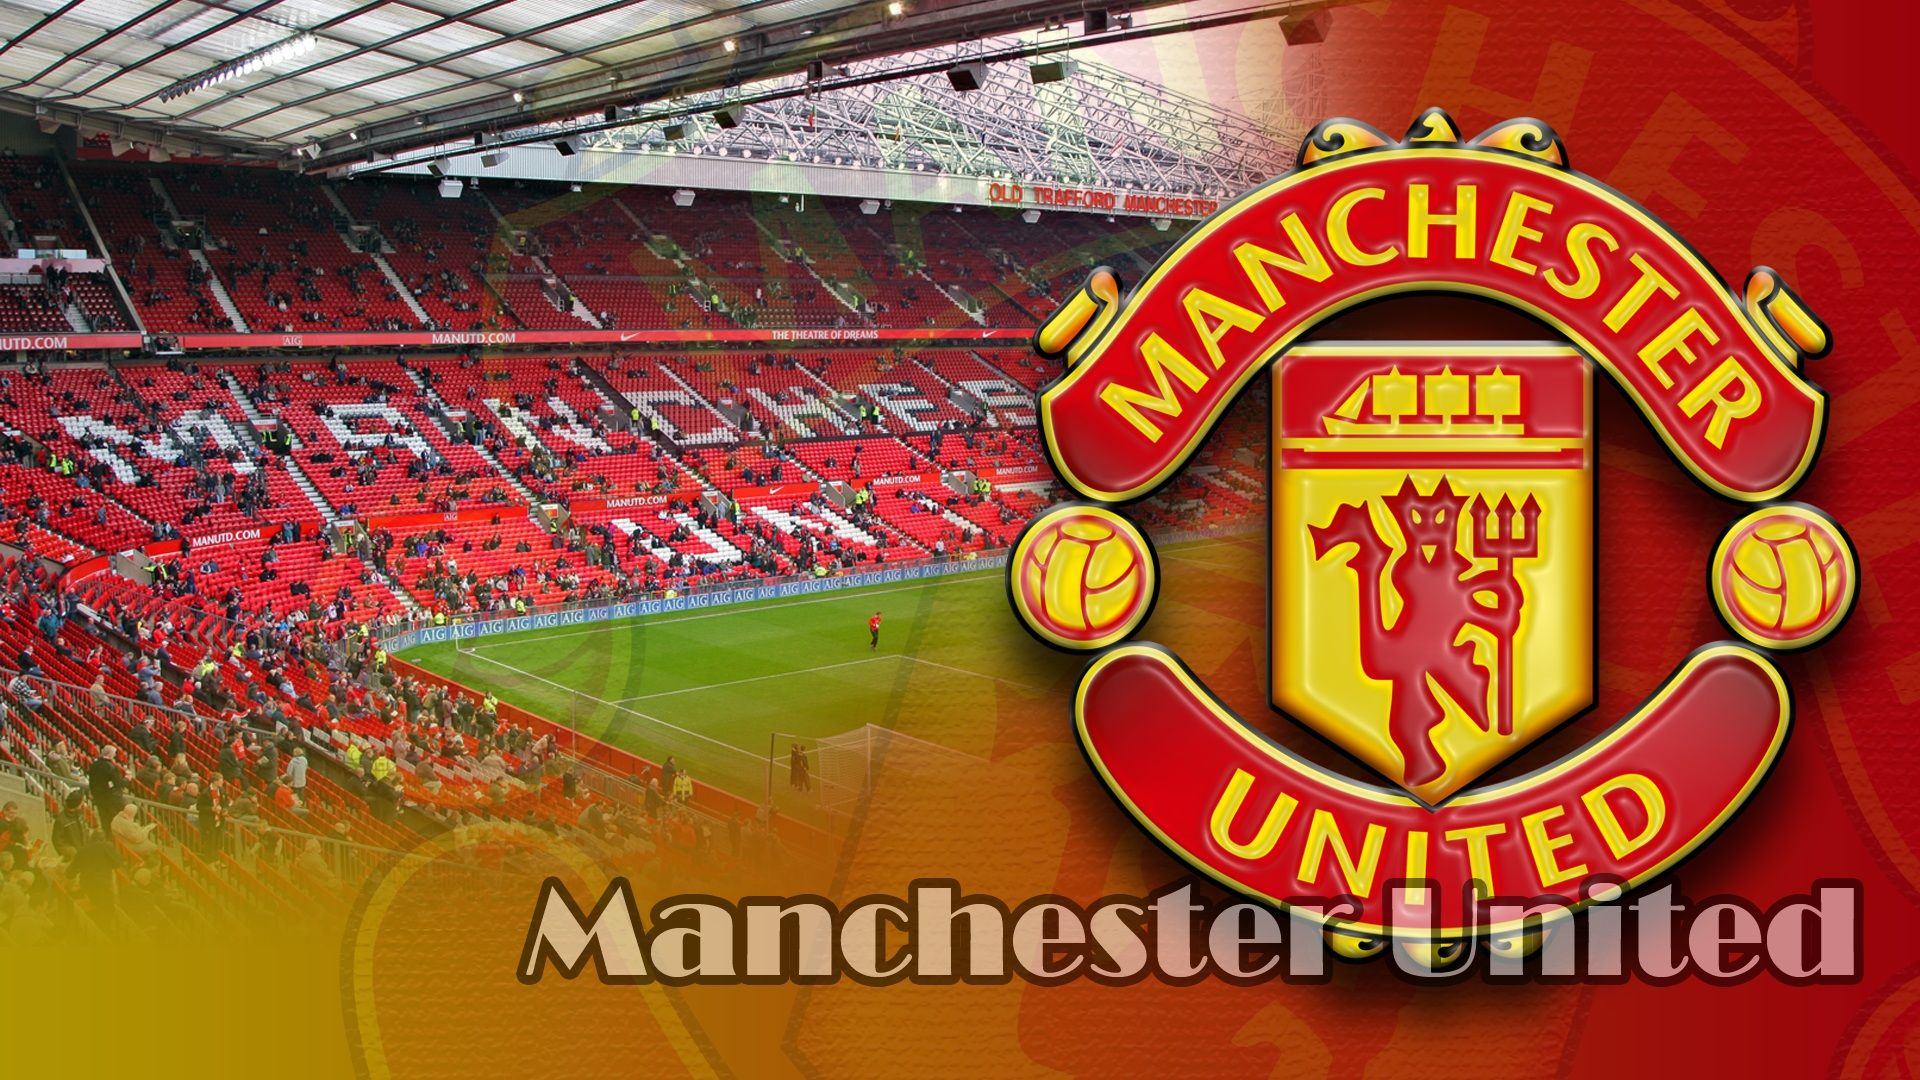 manchester united wallpaper hd x wallpaper football